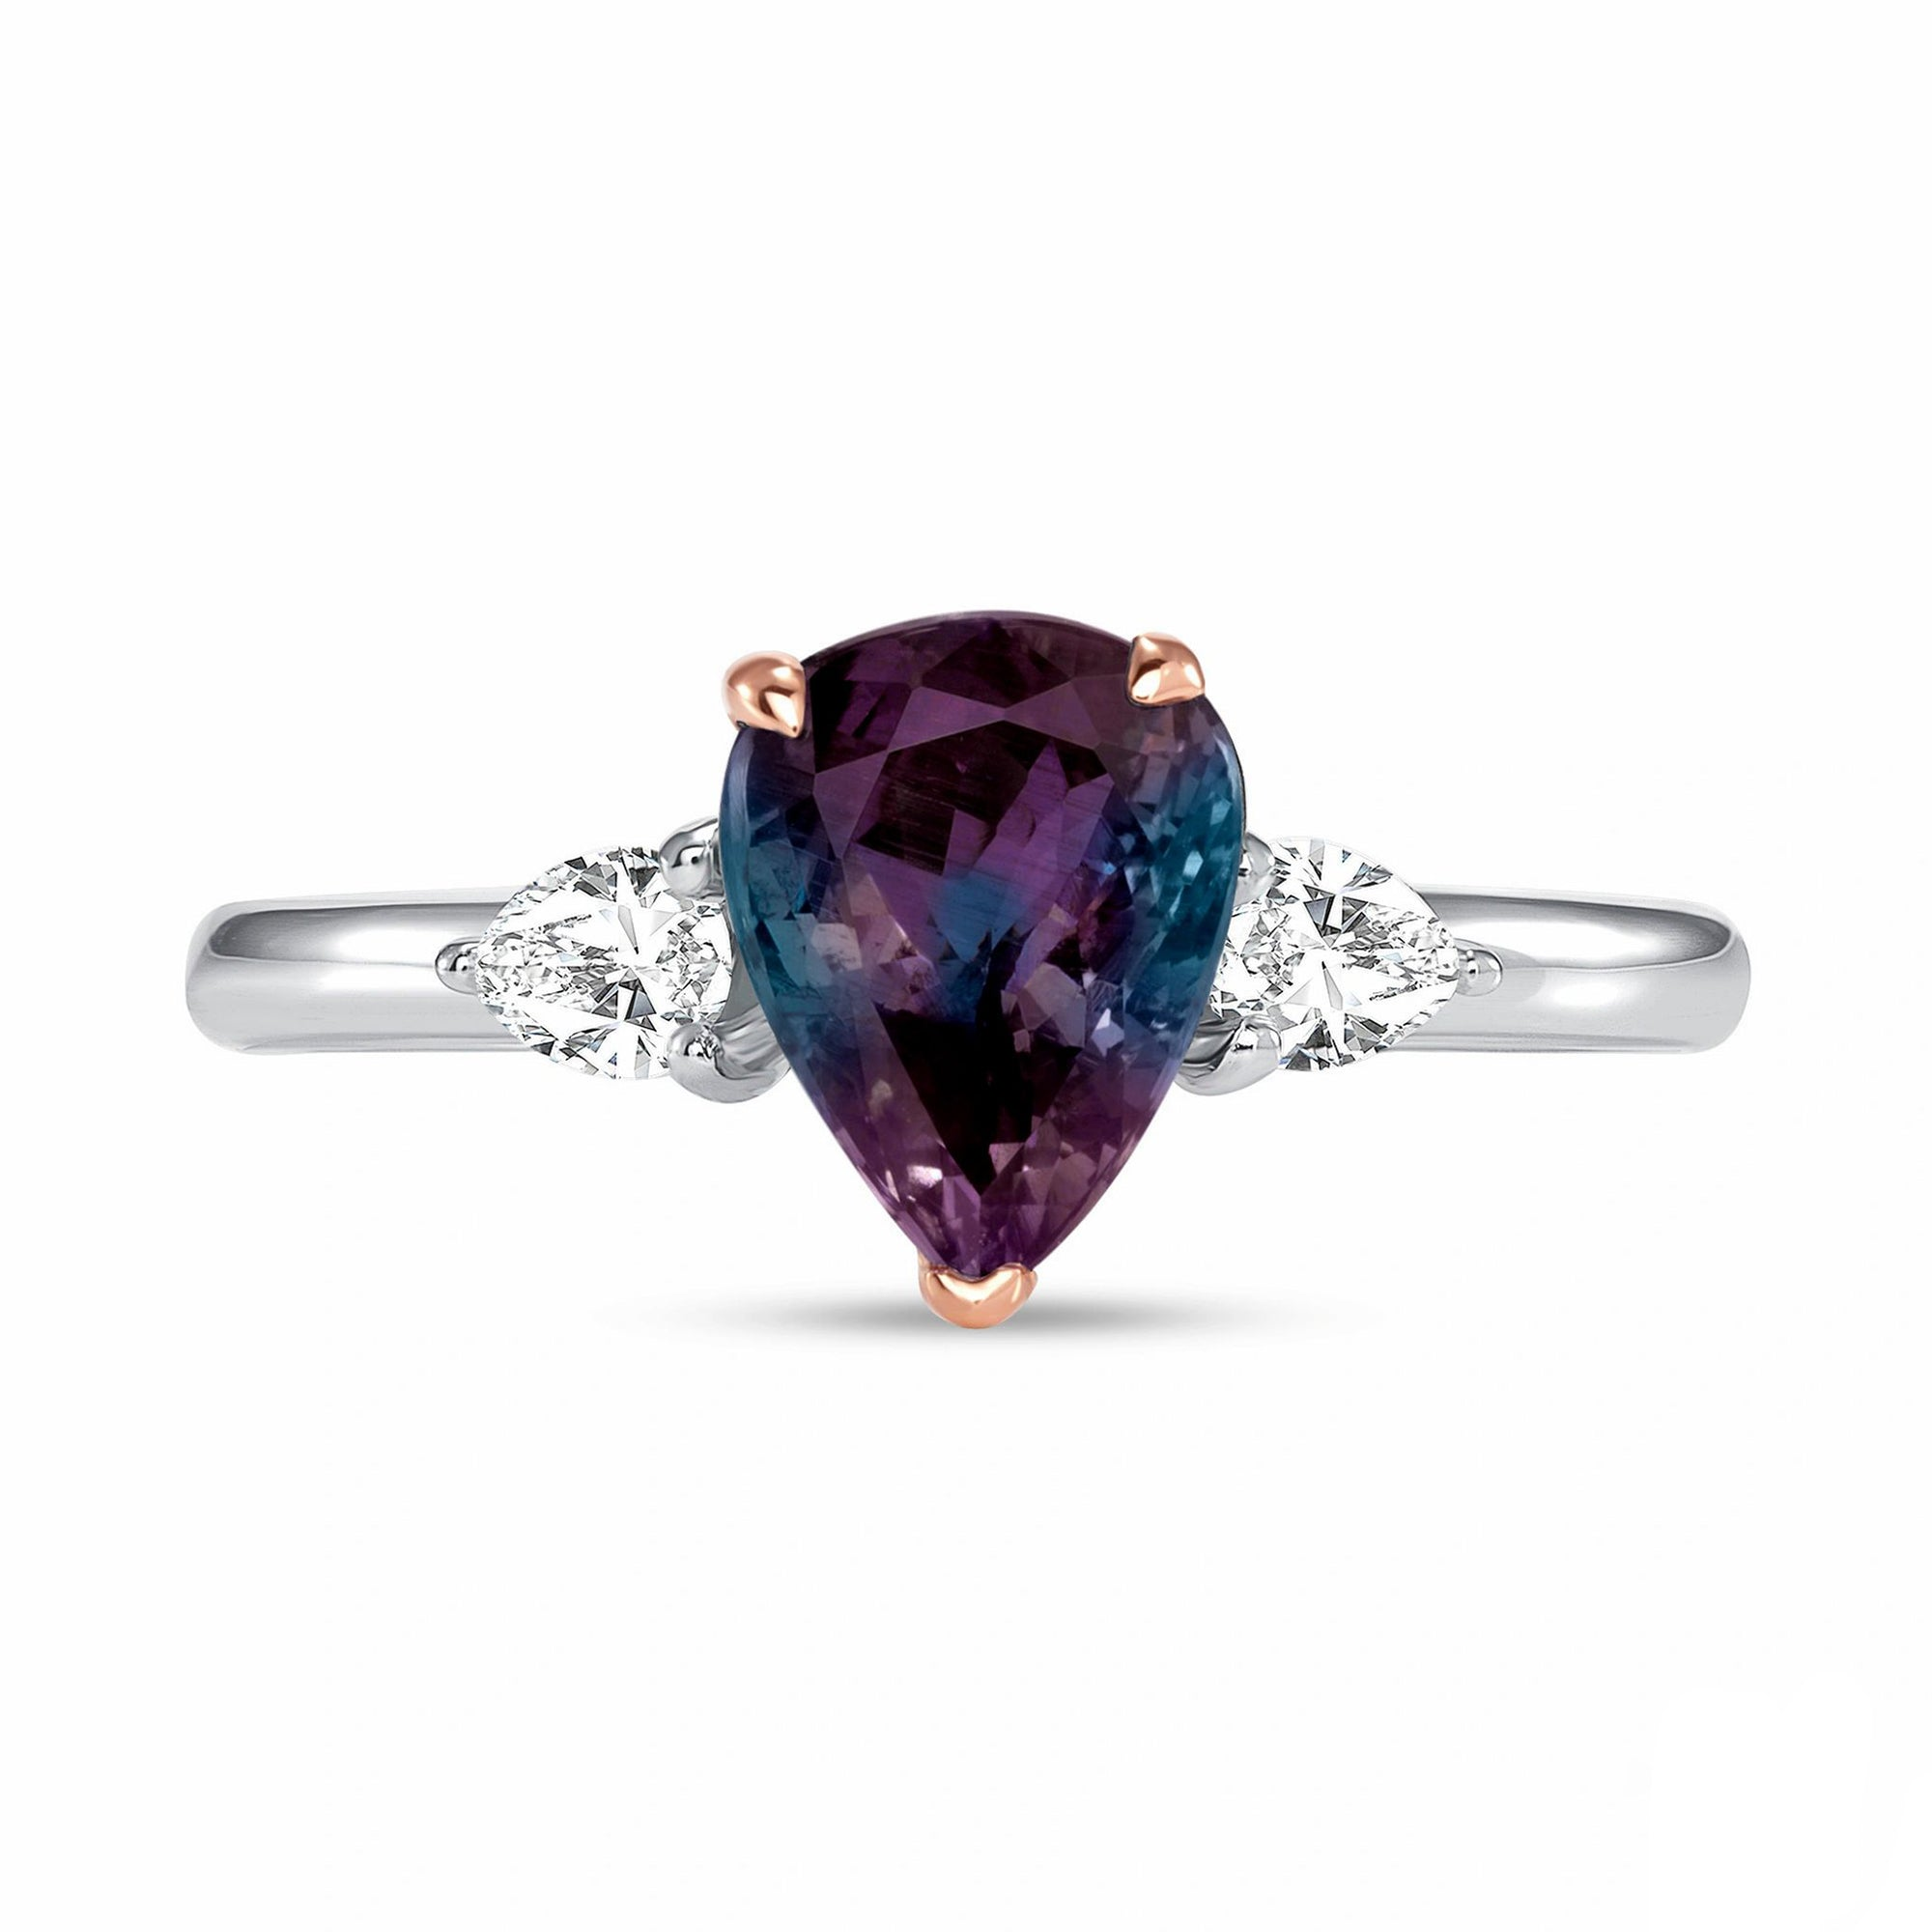 Alexandrite and Diamond, Platinum and 18k Rose Gold Ring - Talisman Collection Fine Jewelers